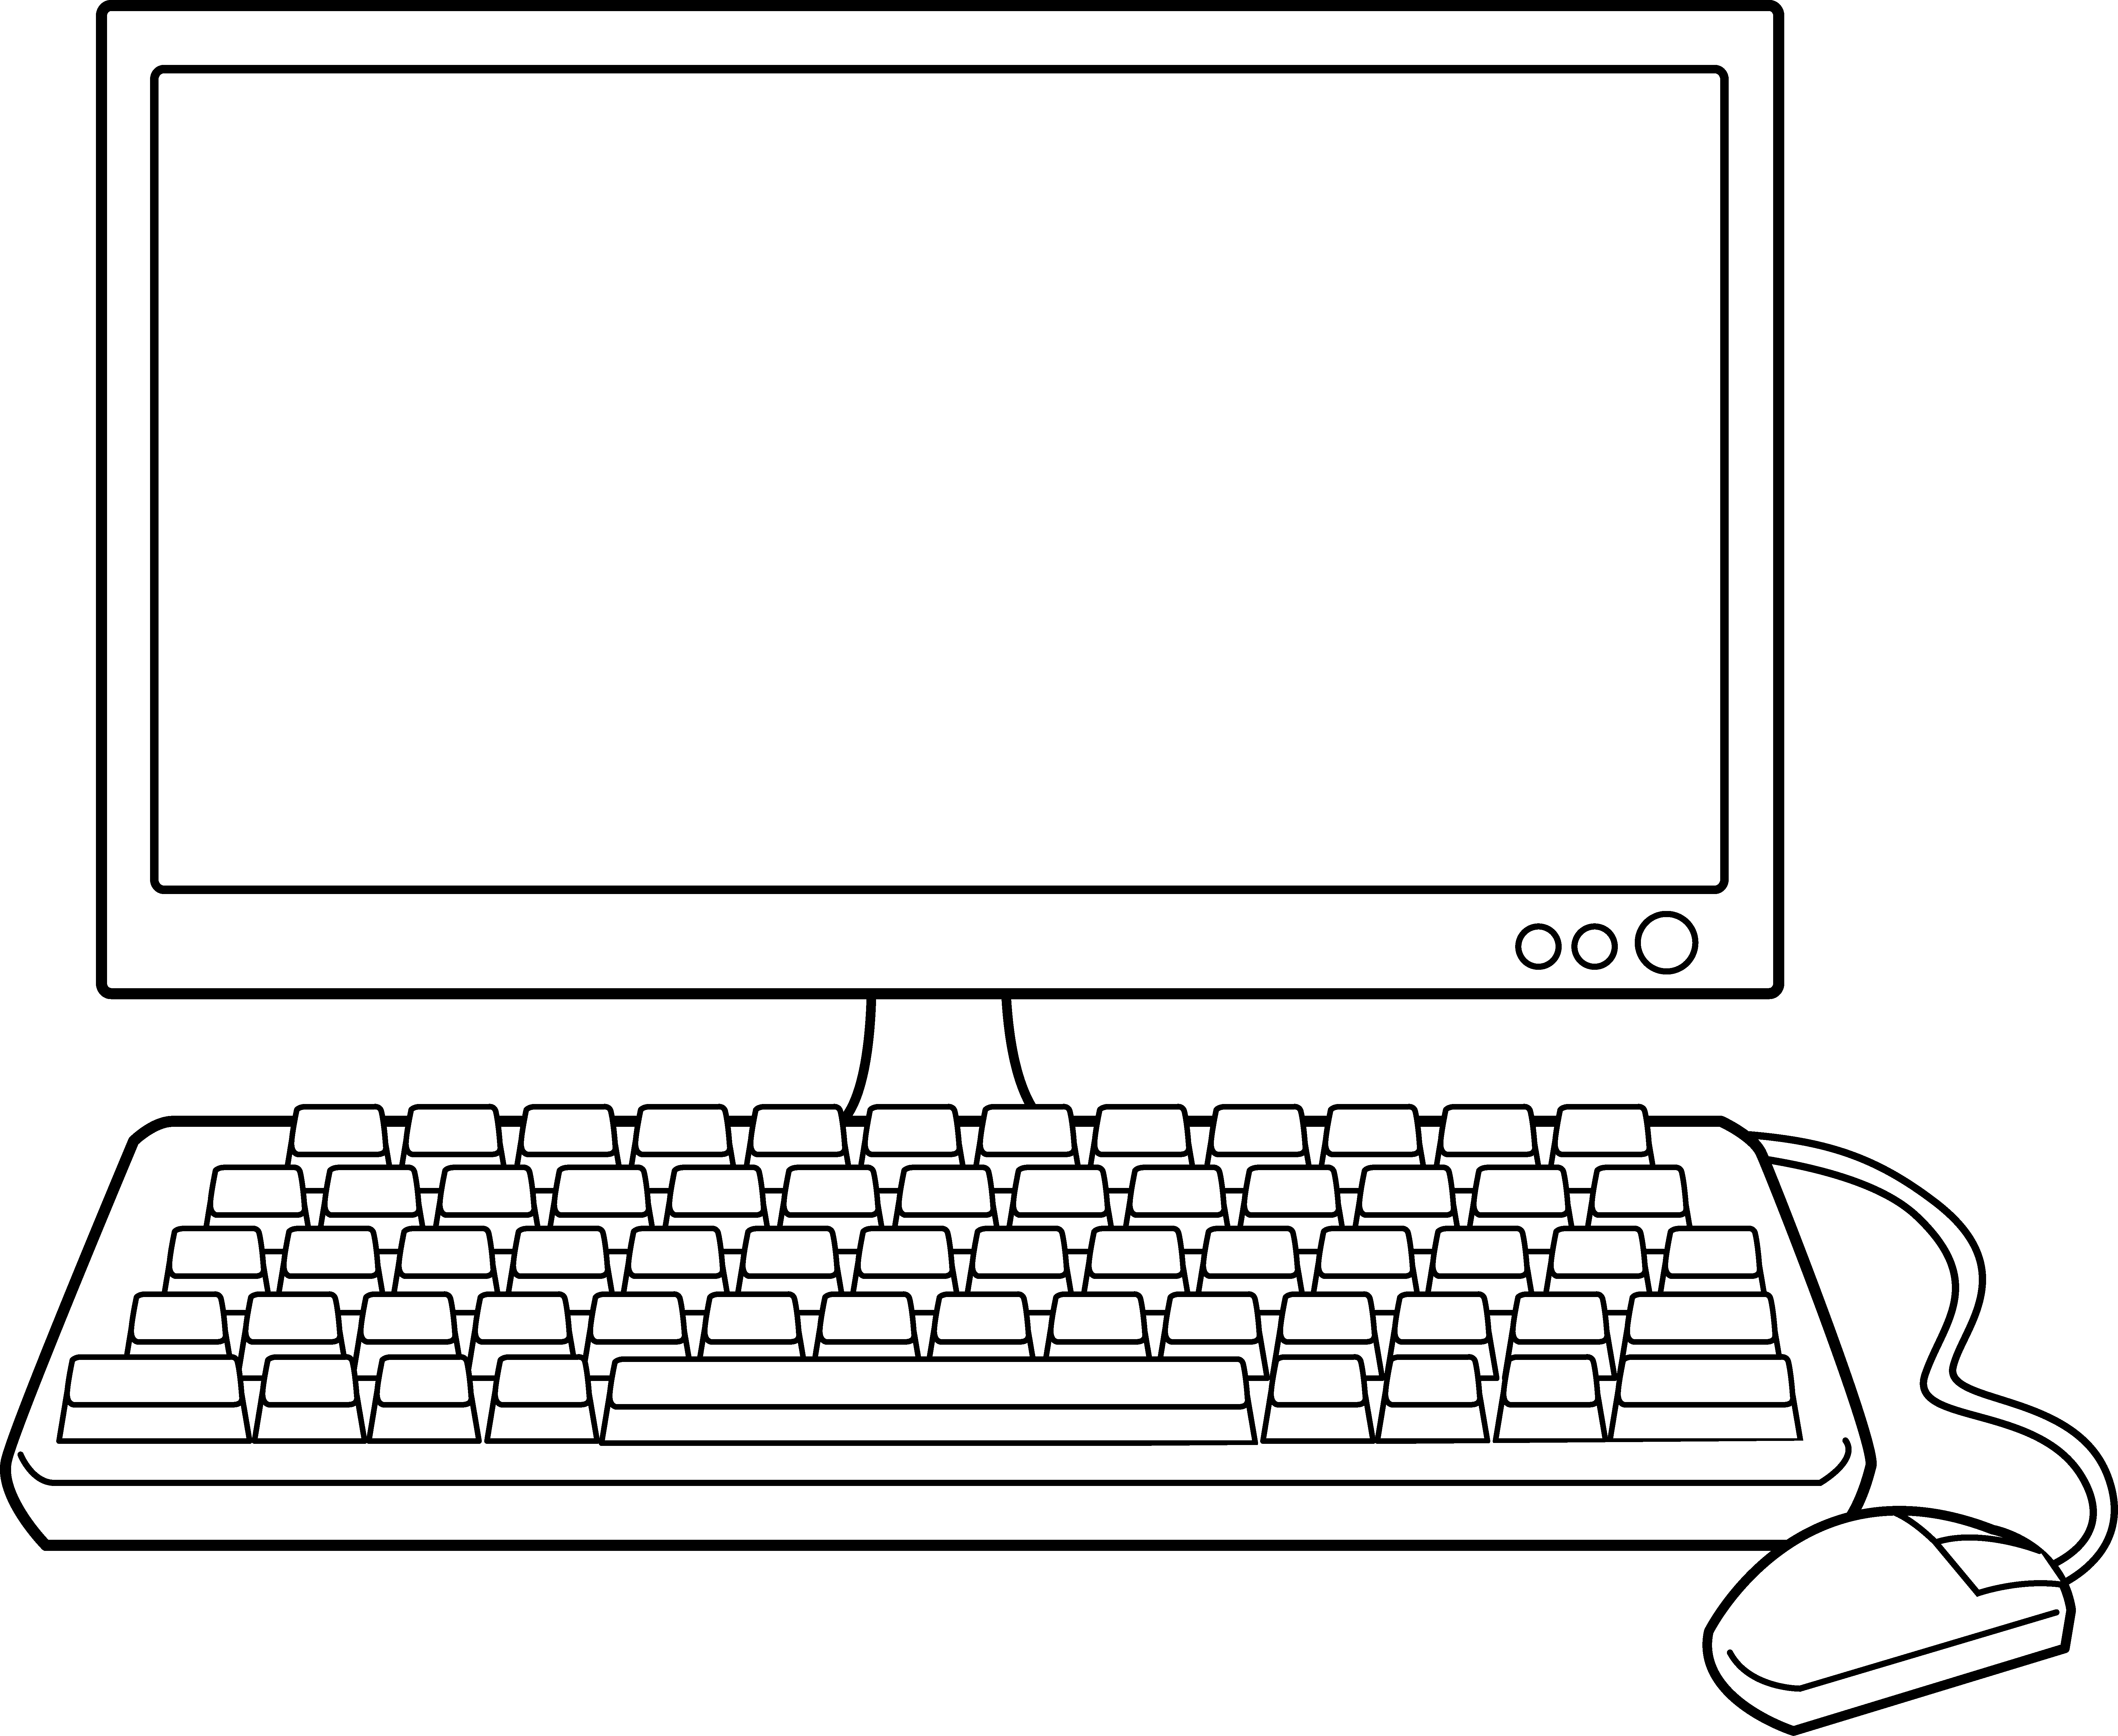 Desktop drawing computer. Collection of high